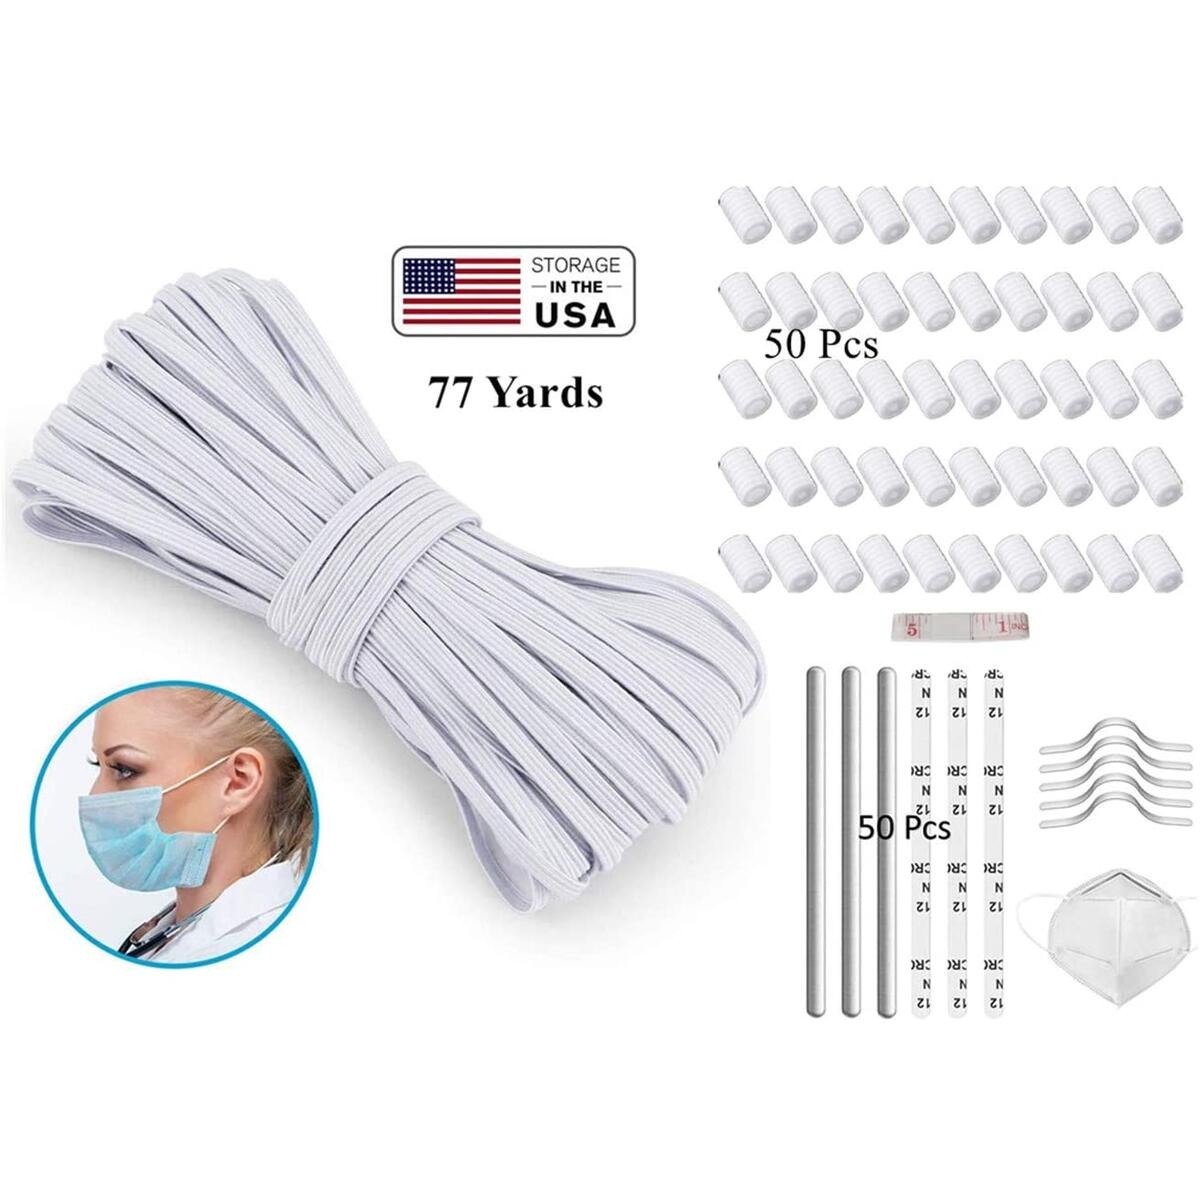 ARGIGU 77 Yards 1/8 inch Elastic Cords for Sewing Flat Braided Elastic with 50 Pieces Adjustable Buckles and 50 Pieces Nose Bridges for DIY Sewing and Crafting